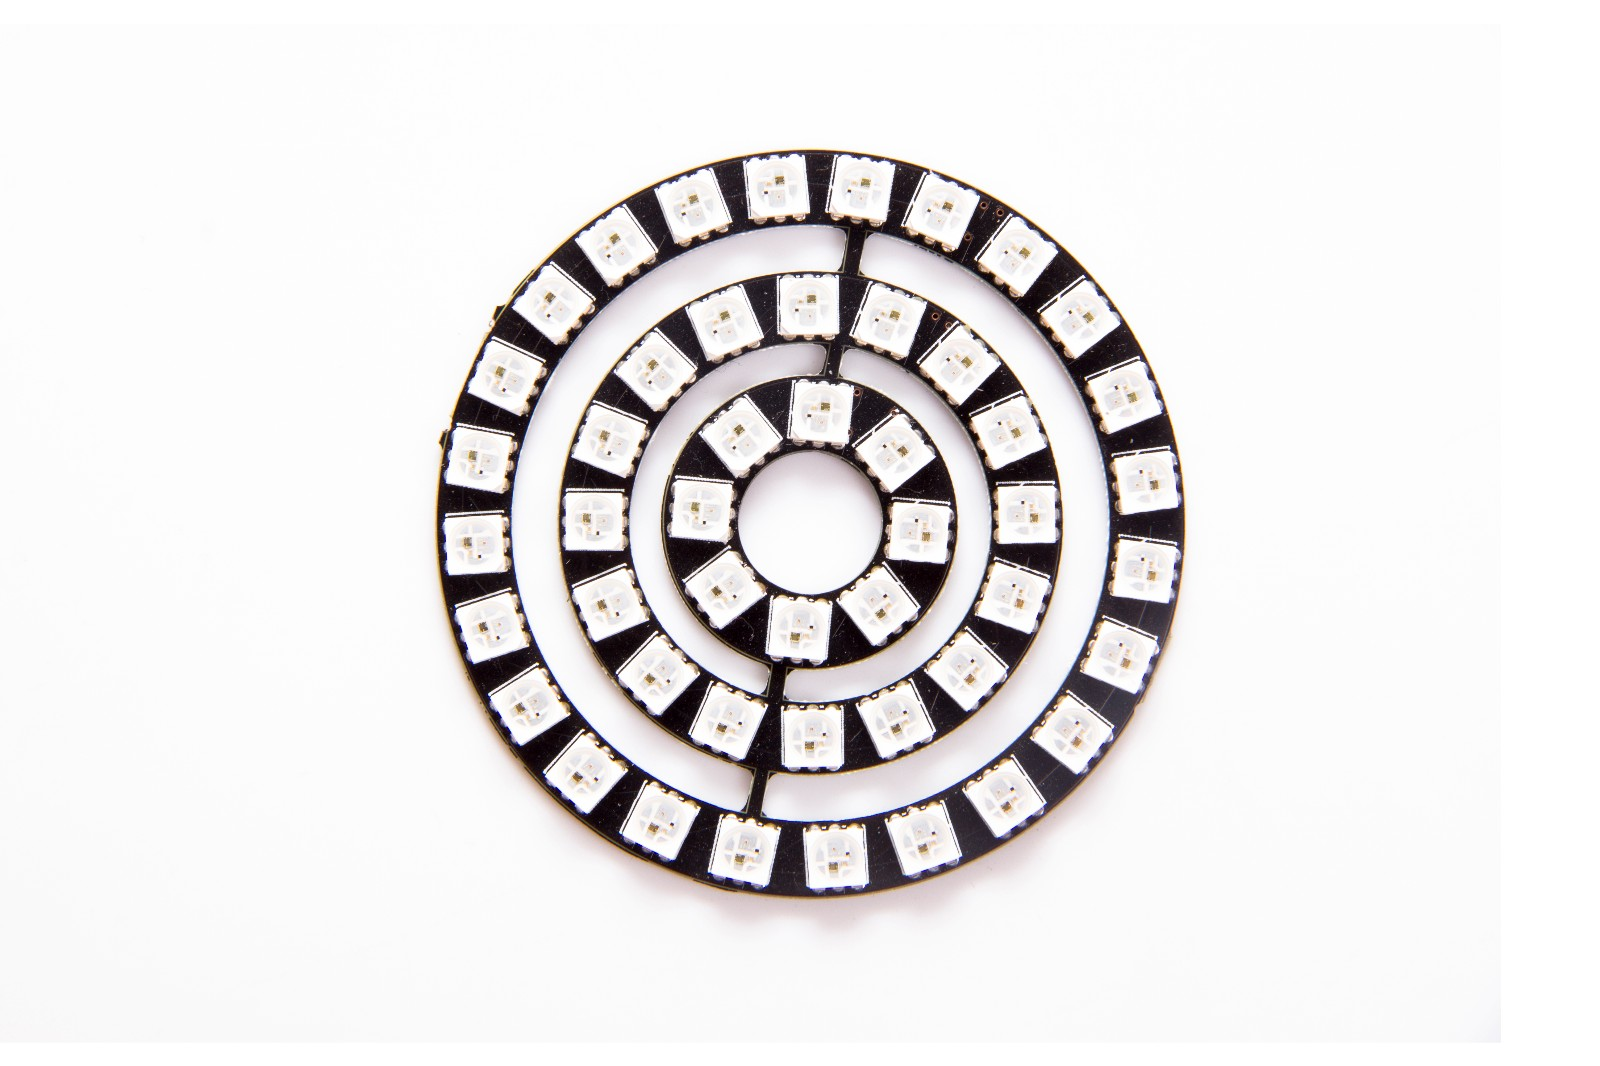 WS2813 Digital RGB LED Ring